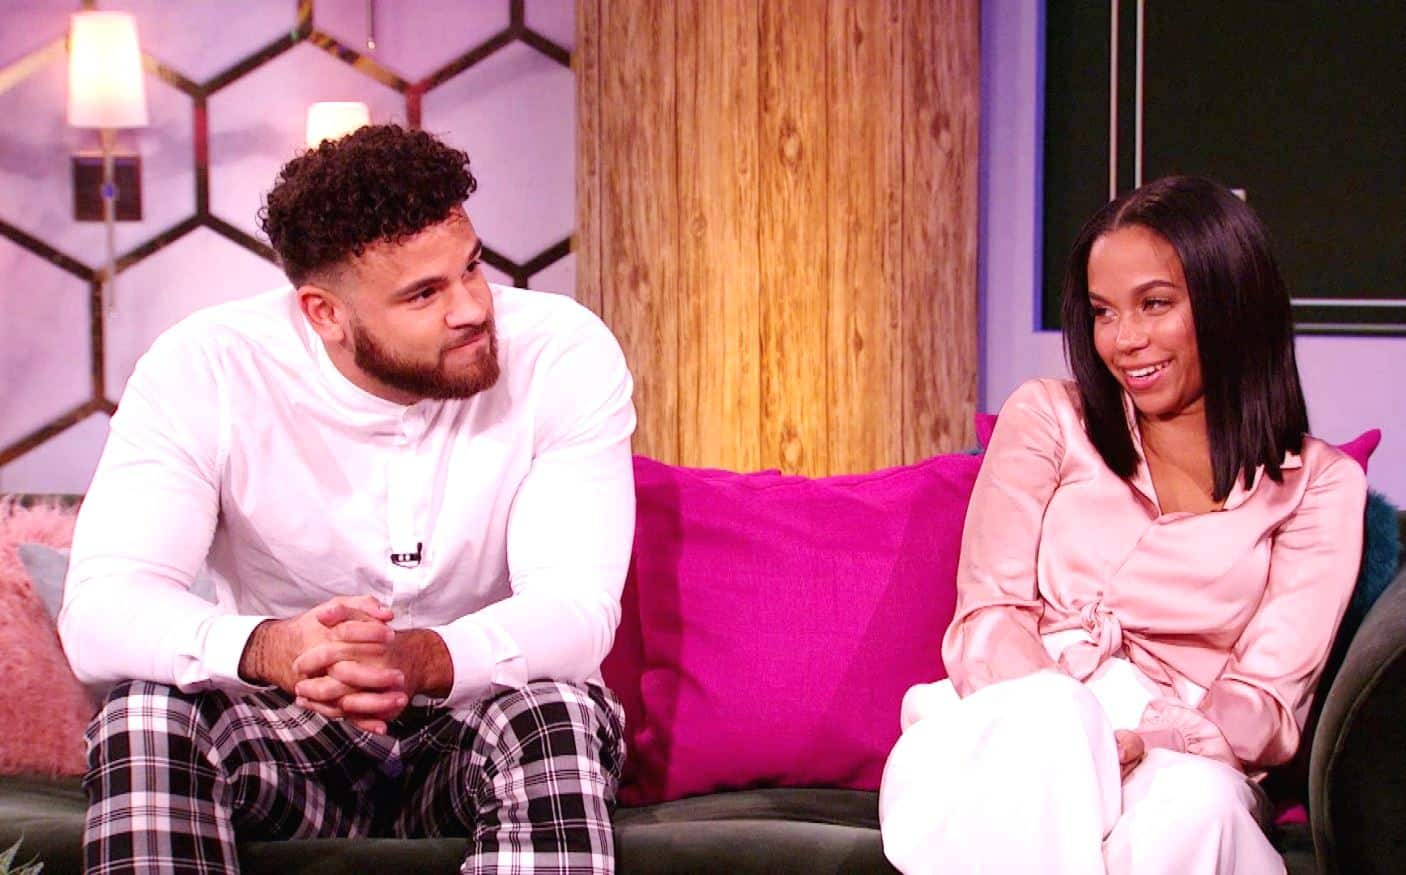 The Real Reason Teen Mom OG's Cory and Cheyenne Won't Get Back Together Is Revealed